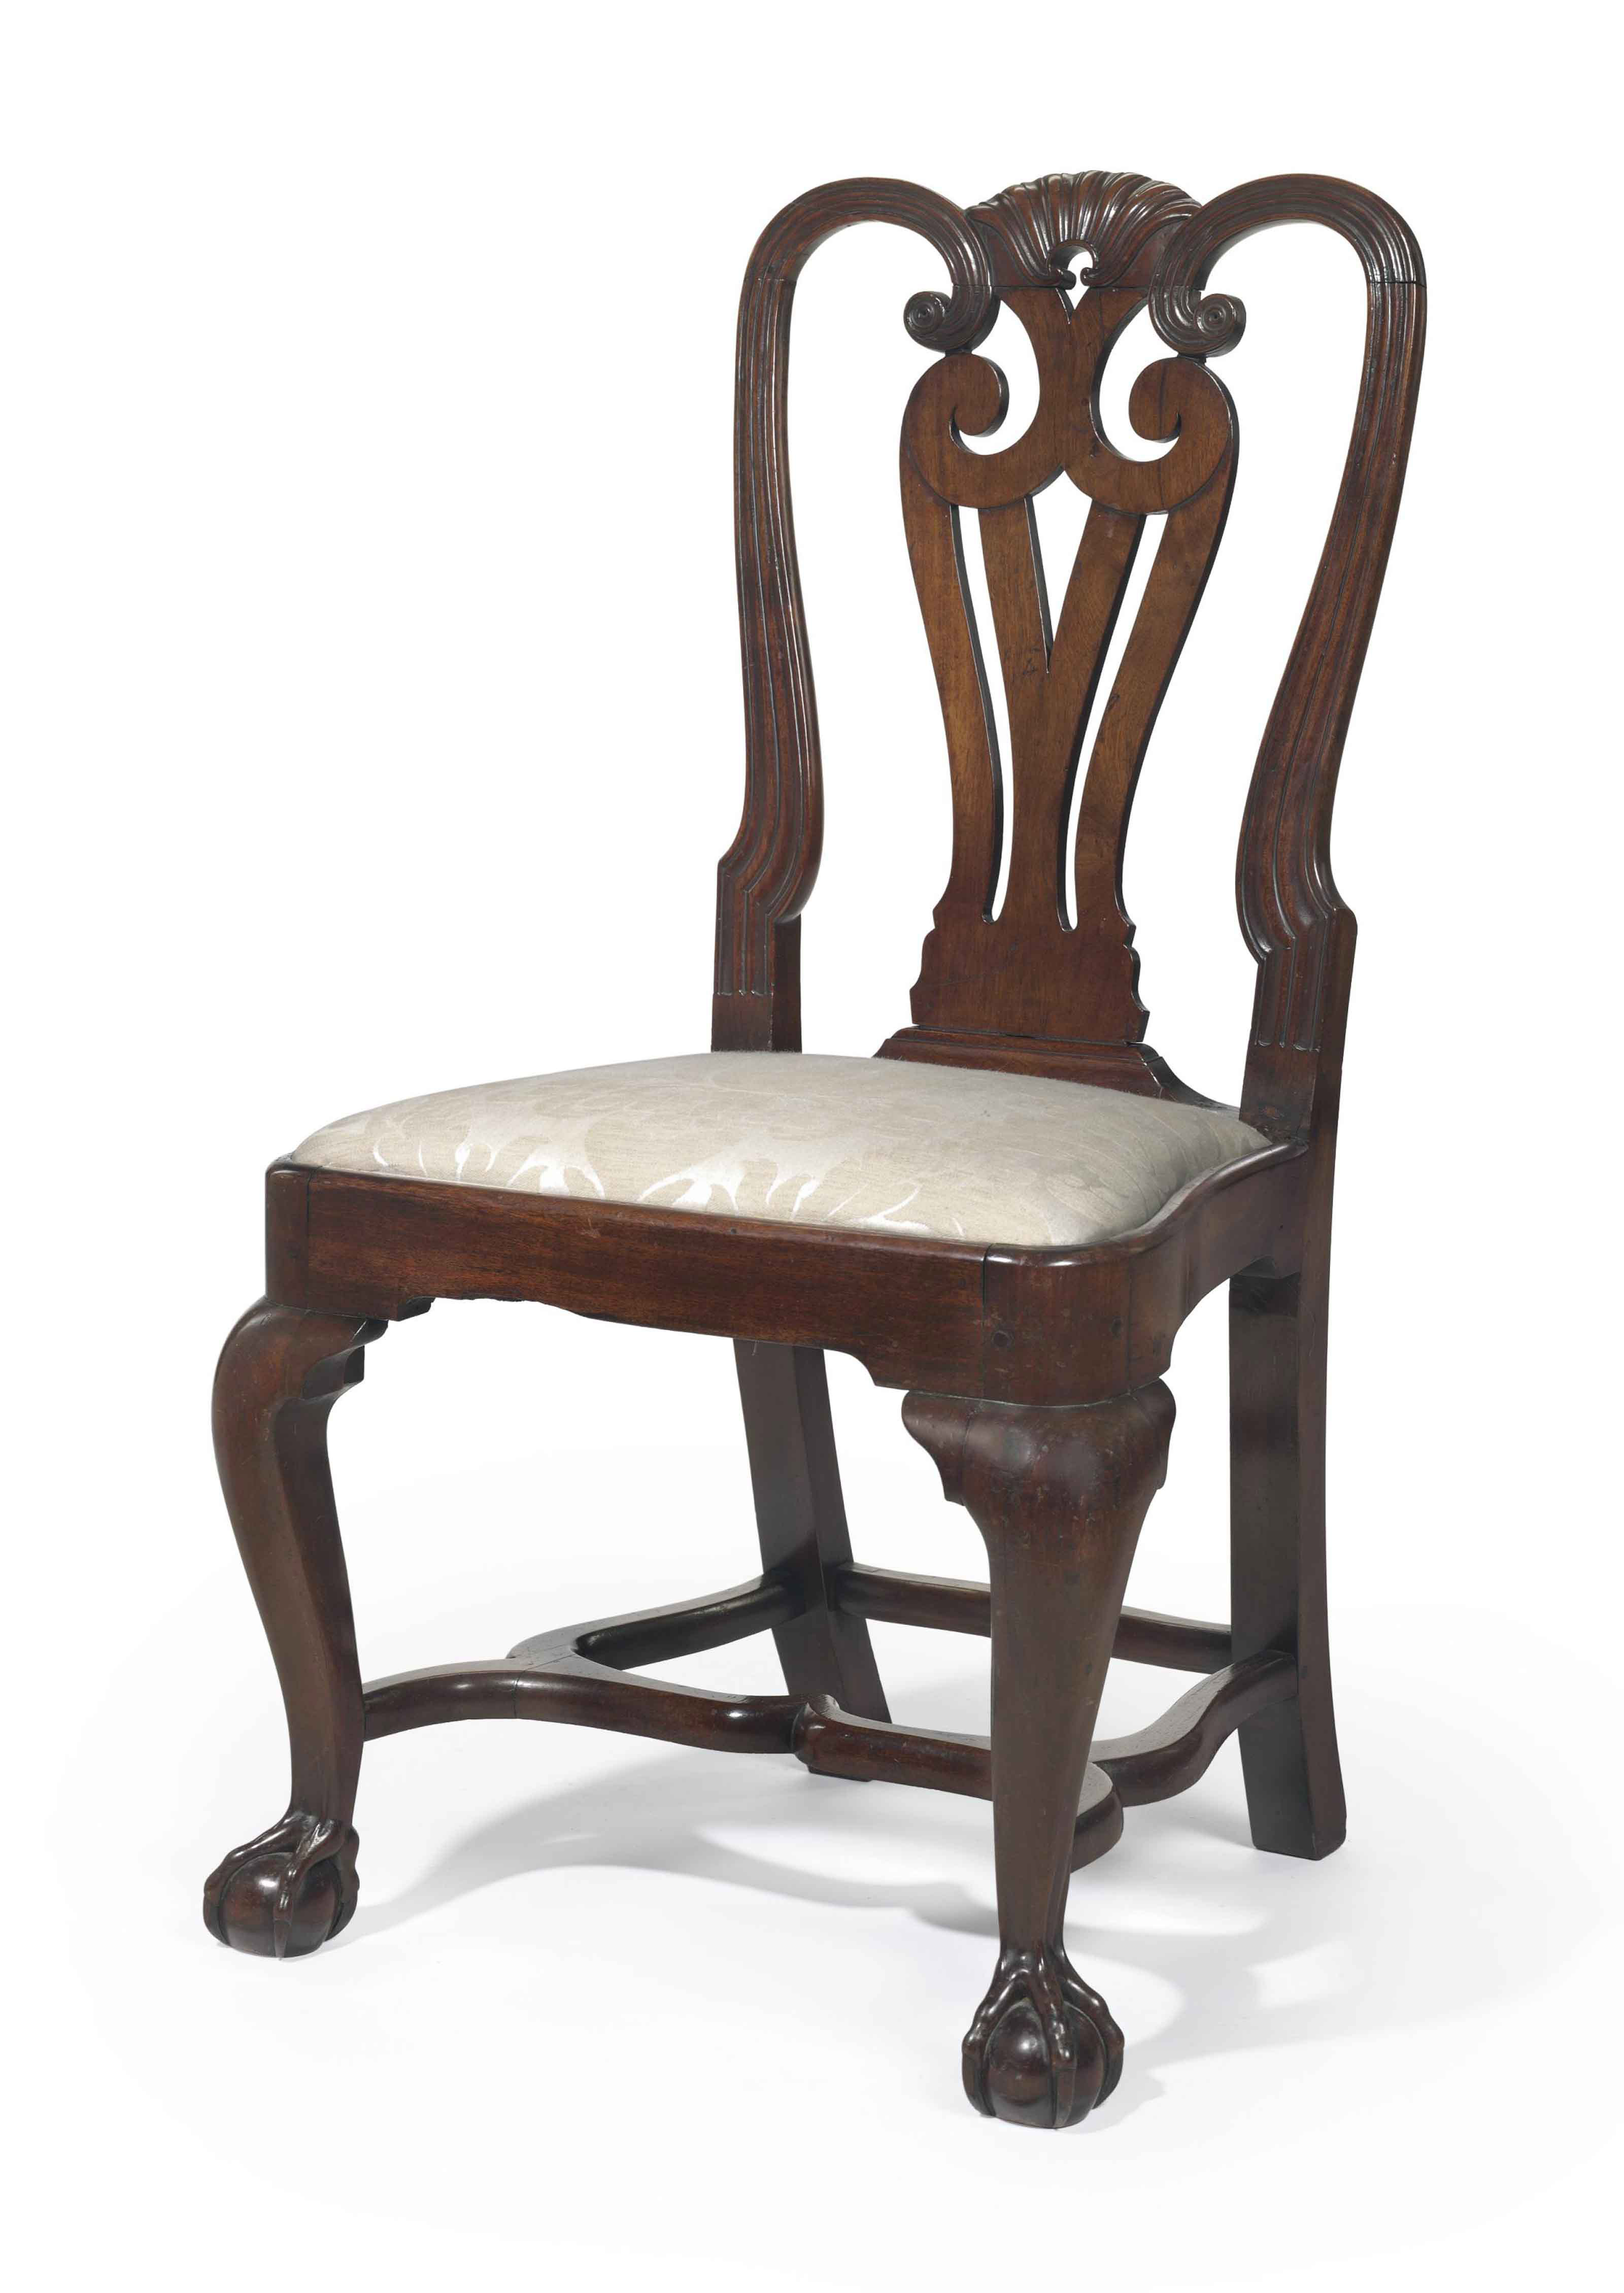 THE NICHOLAS BROWN CHIPPENDALE CARVED MAHOGANY SIDE CHAIR